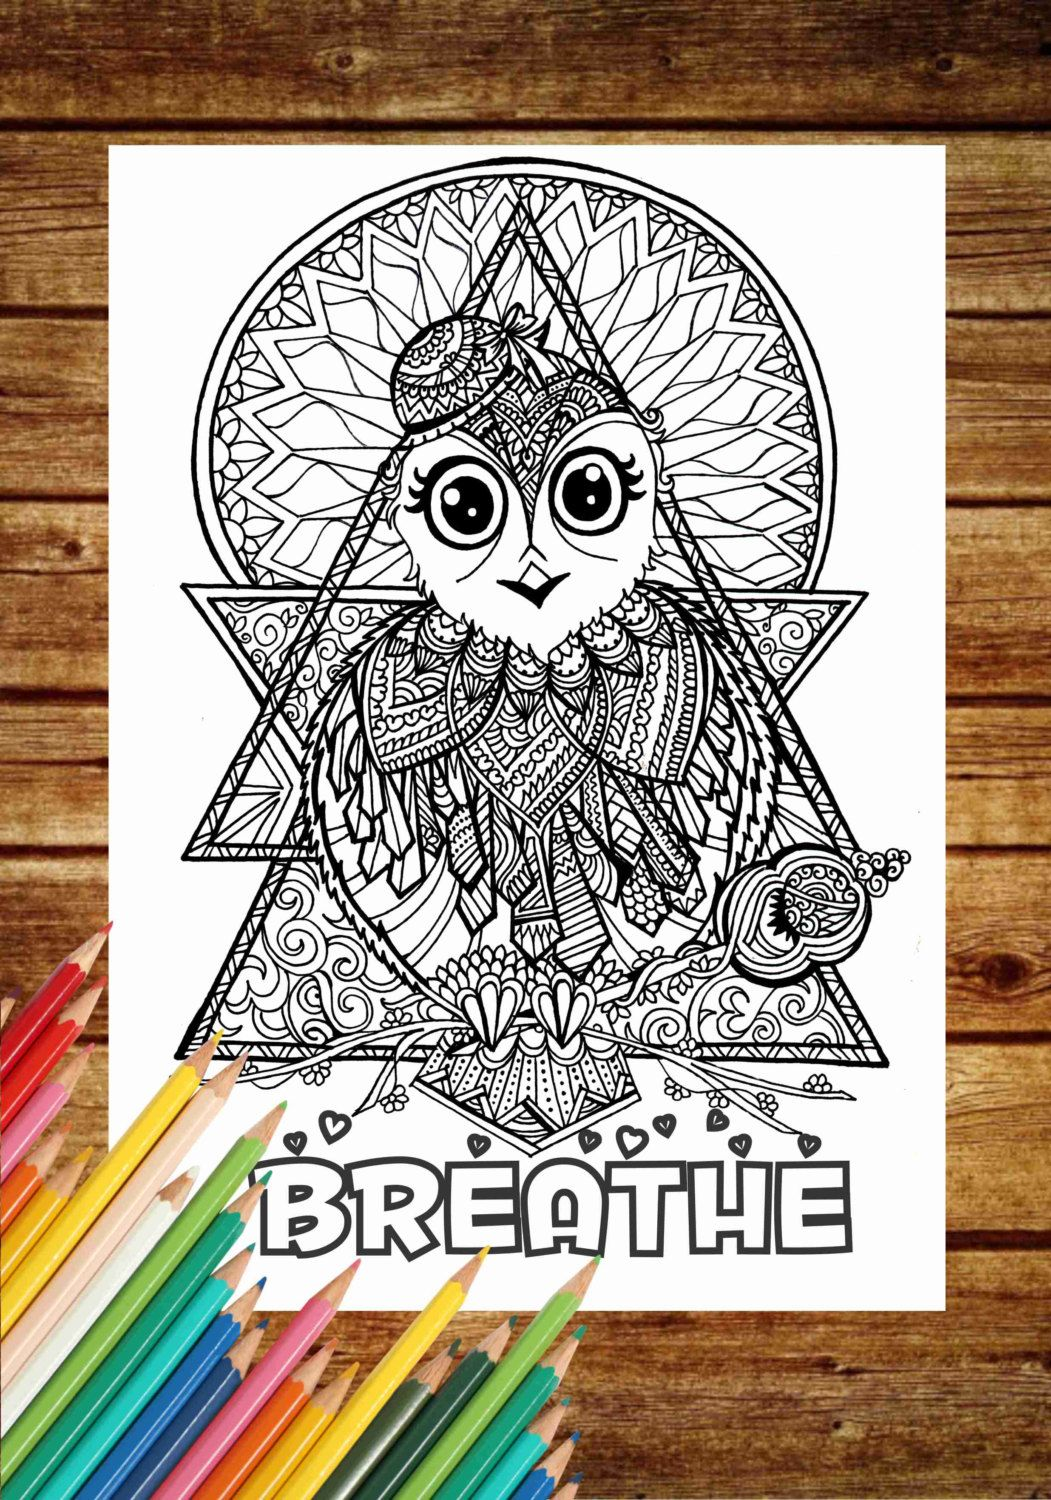 Breathe Coloring Page BREATHE Book Pages Printable Adult Art Therapy